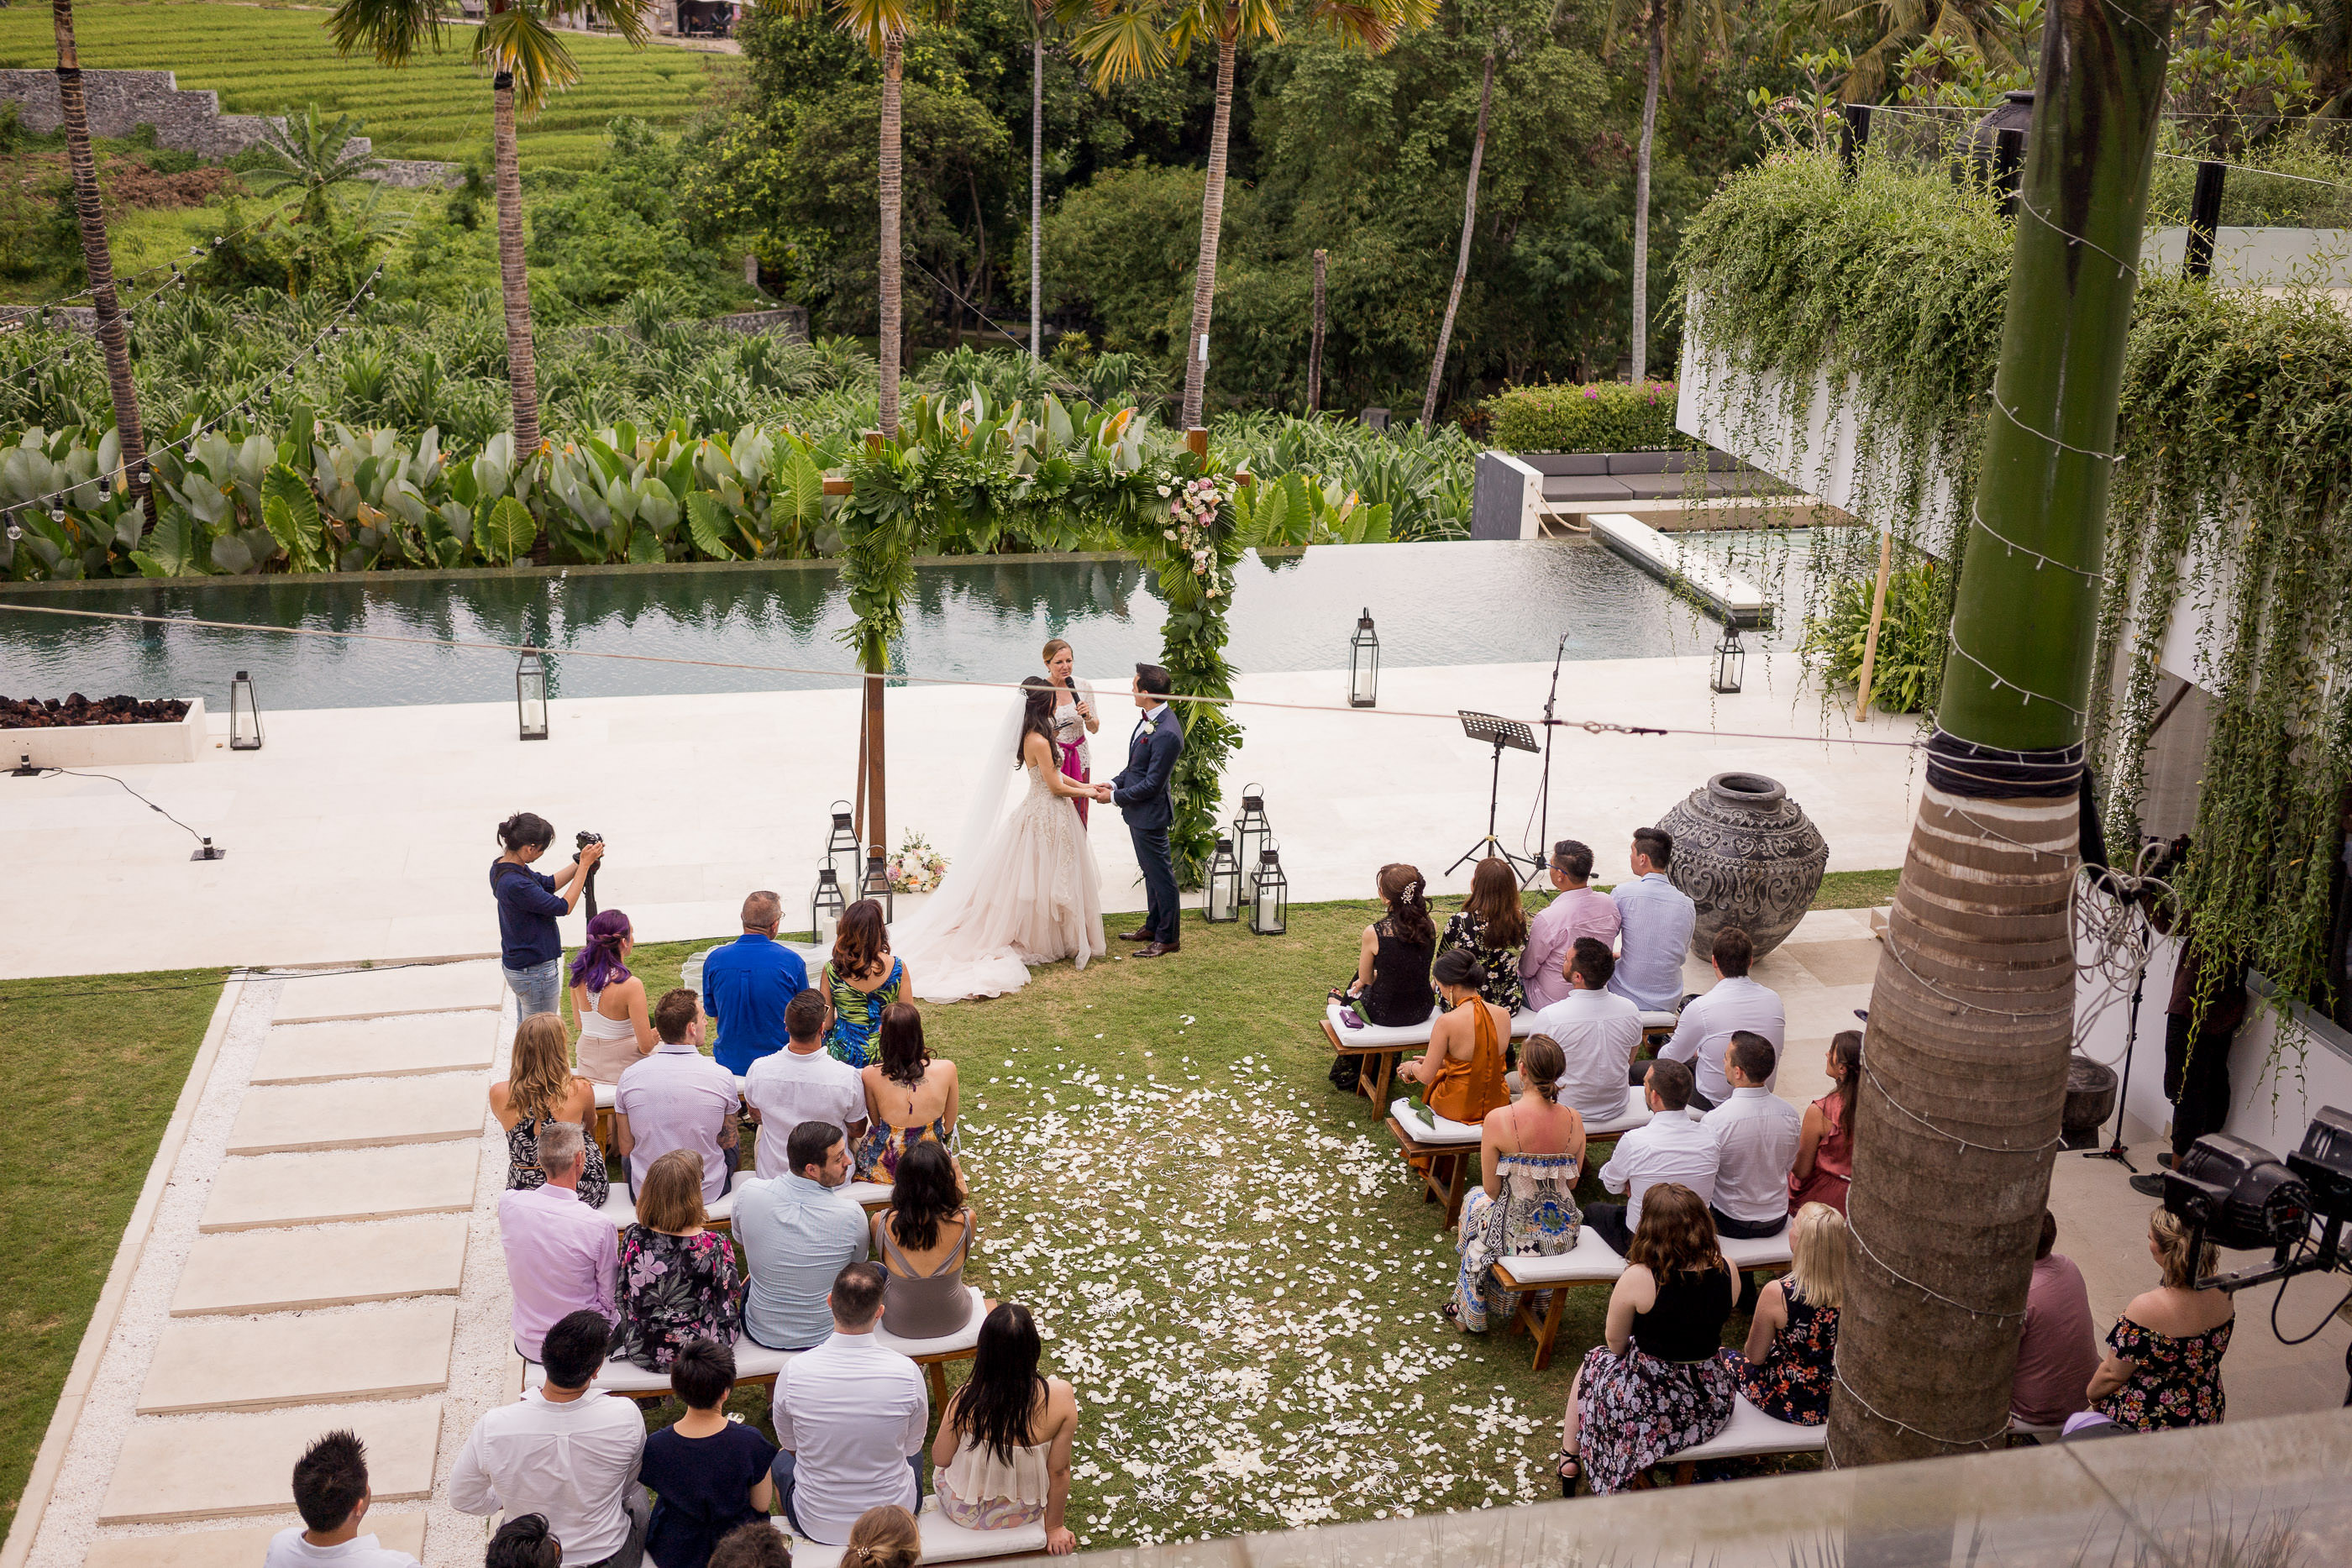 Bali Wedding, Real Wedding, Destination Wedding